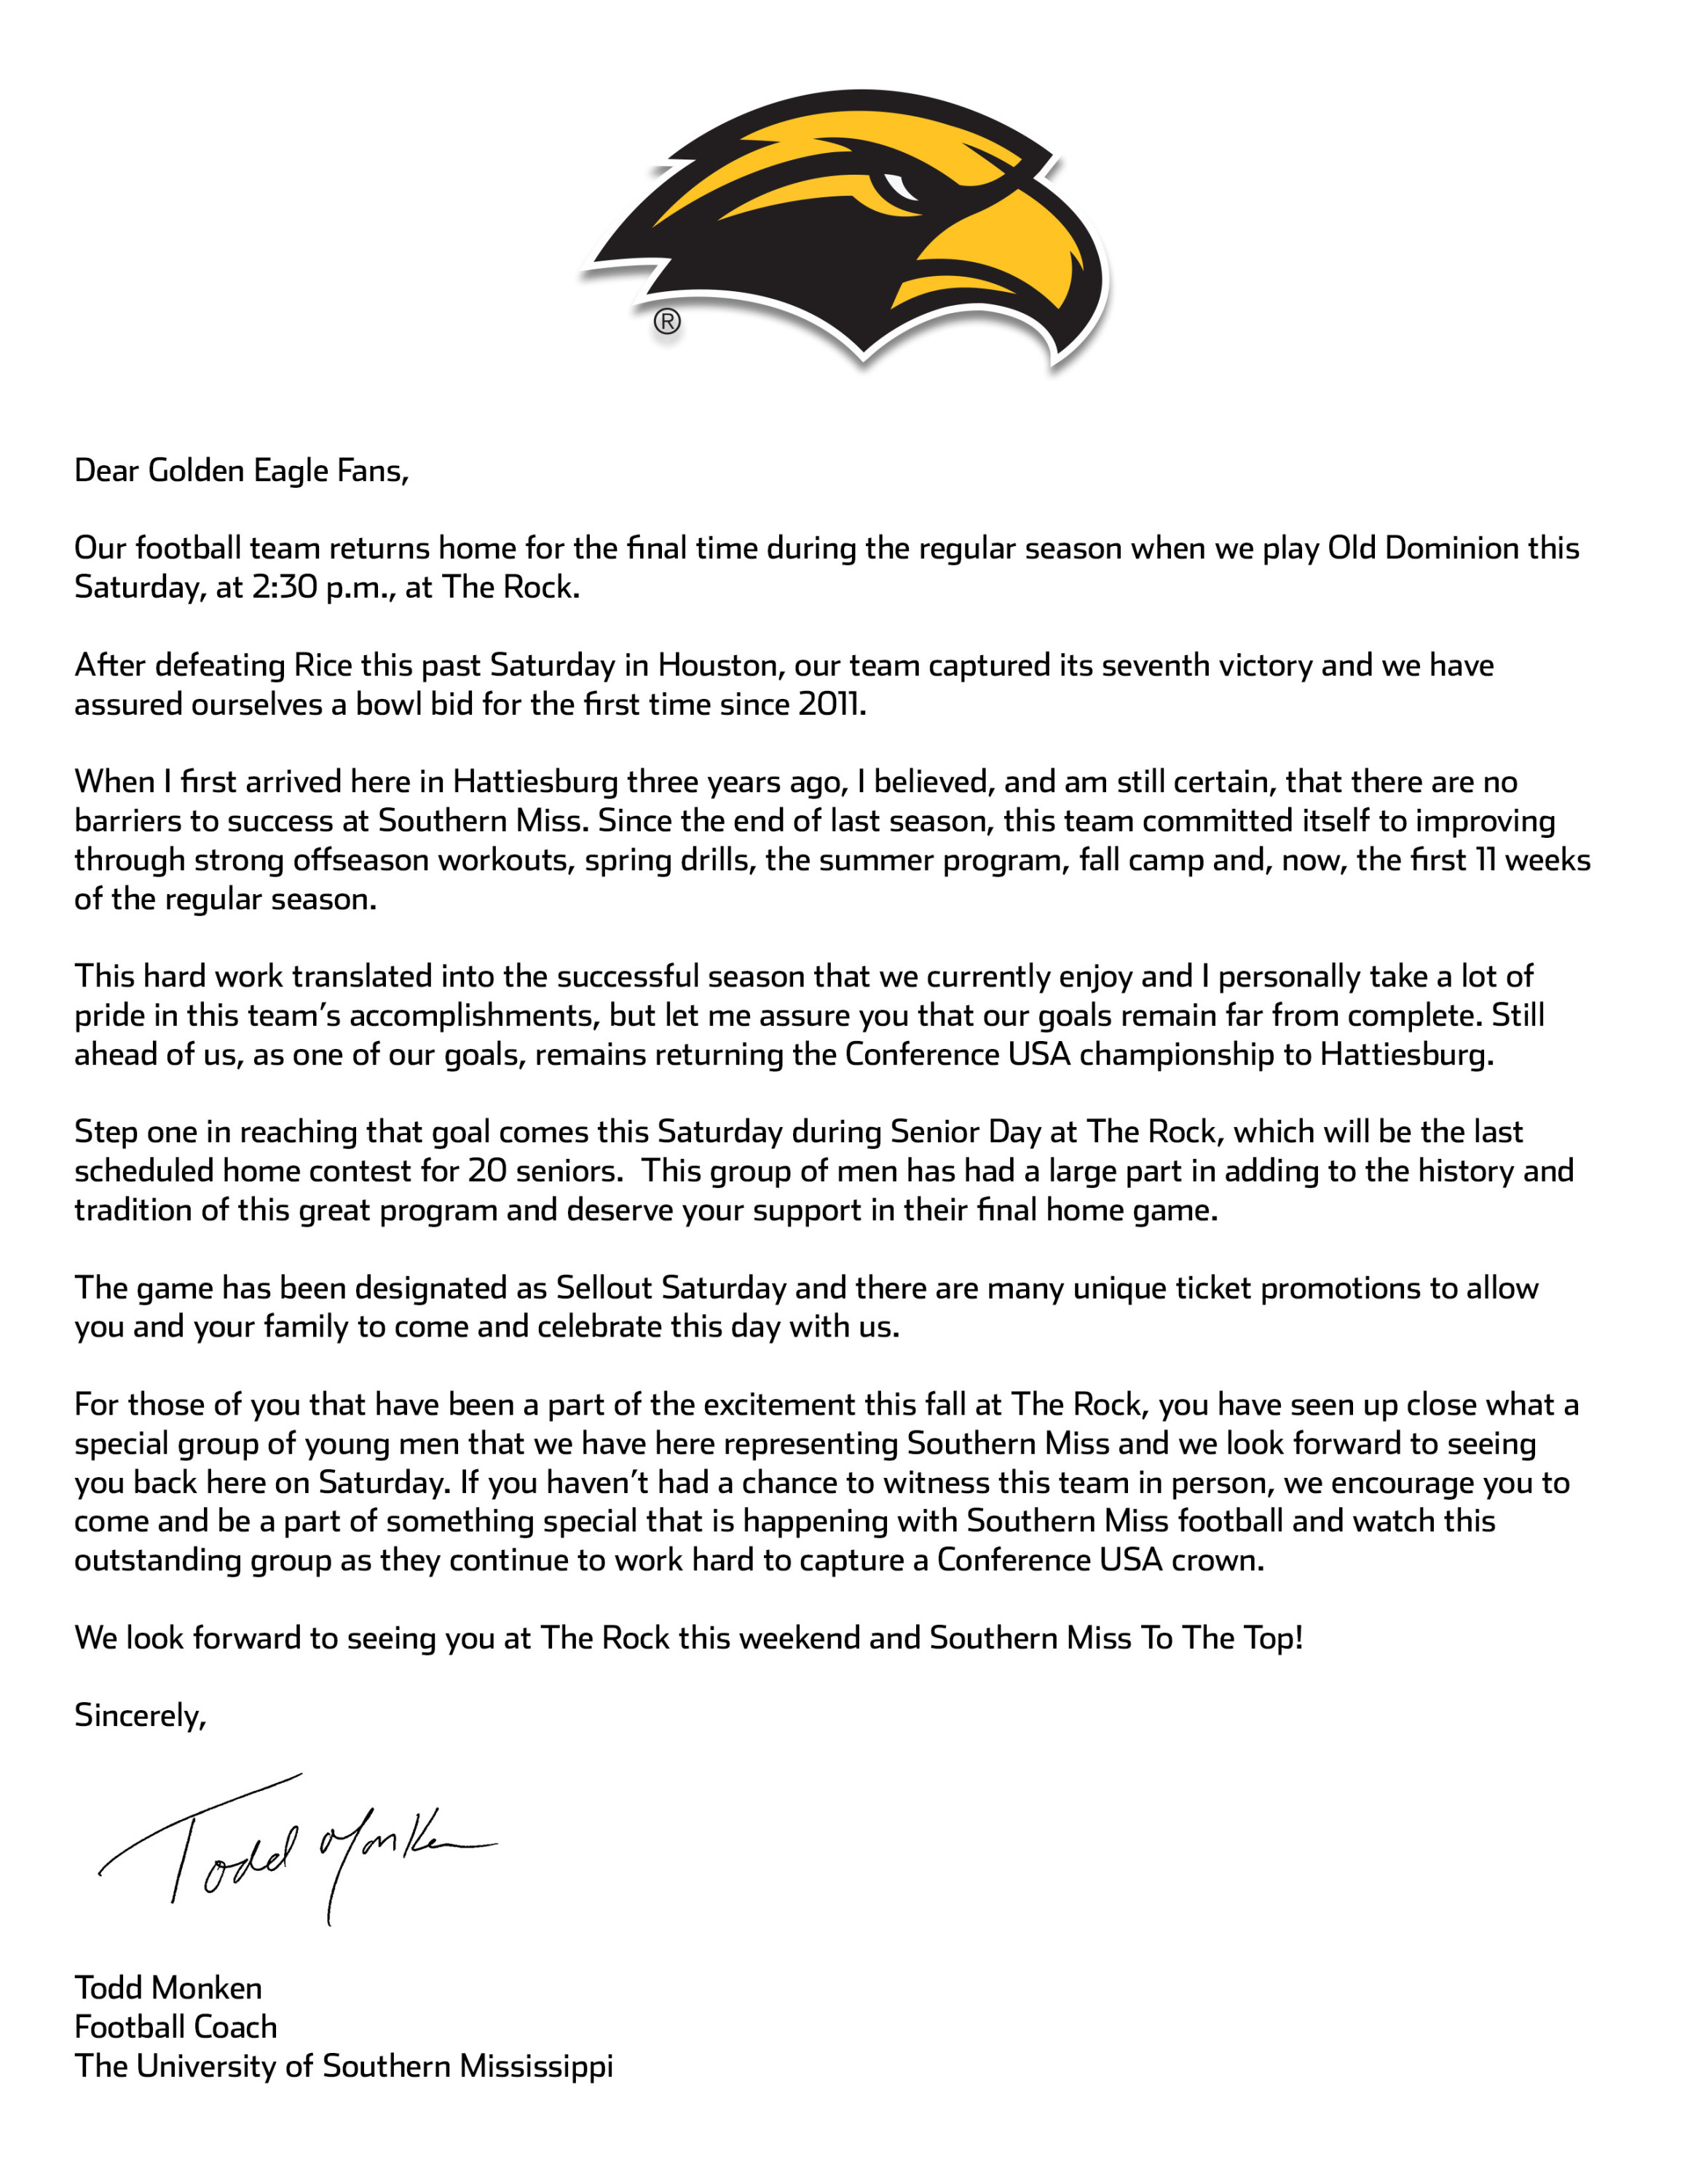 Letter From Coach Monken